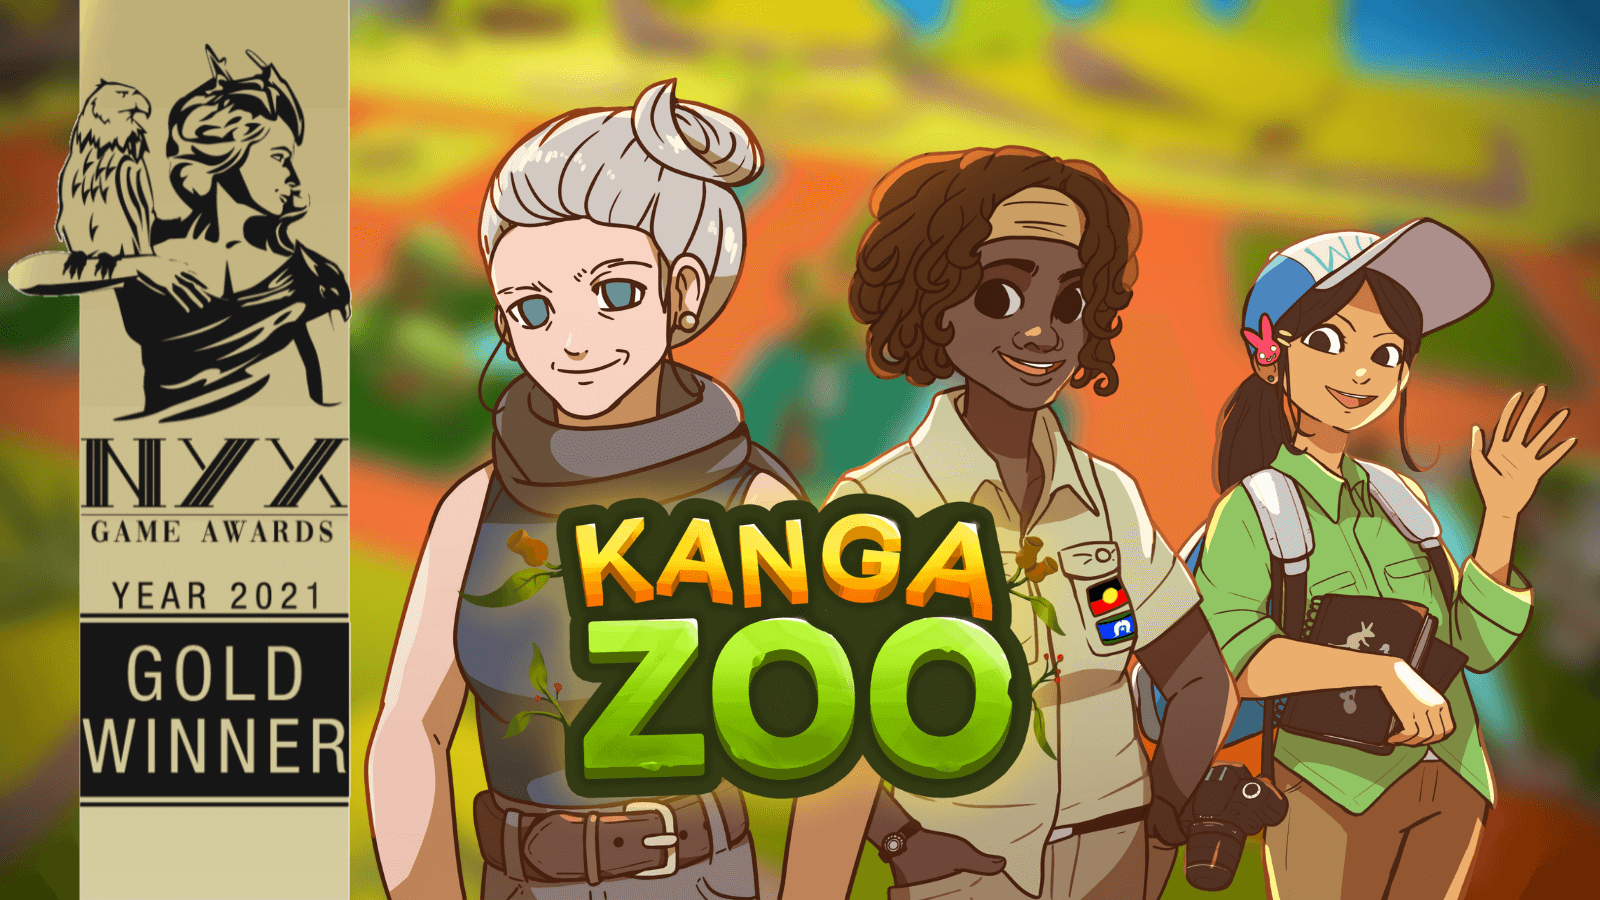 NYX Game Awards Gold badge for the Educational Mobile Game Category. KangaZoo is a mobile simulation game developed by PentaQuest and Chaos Theory.